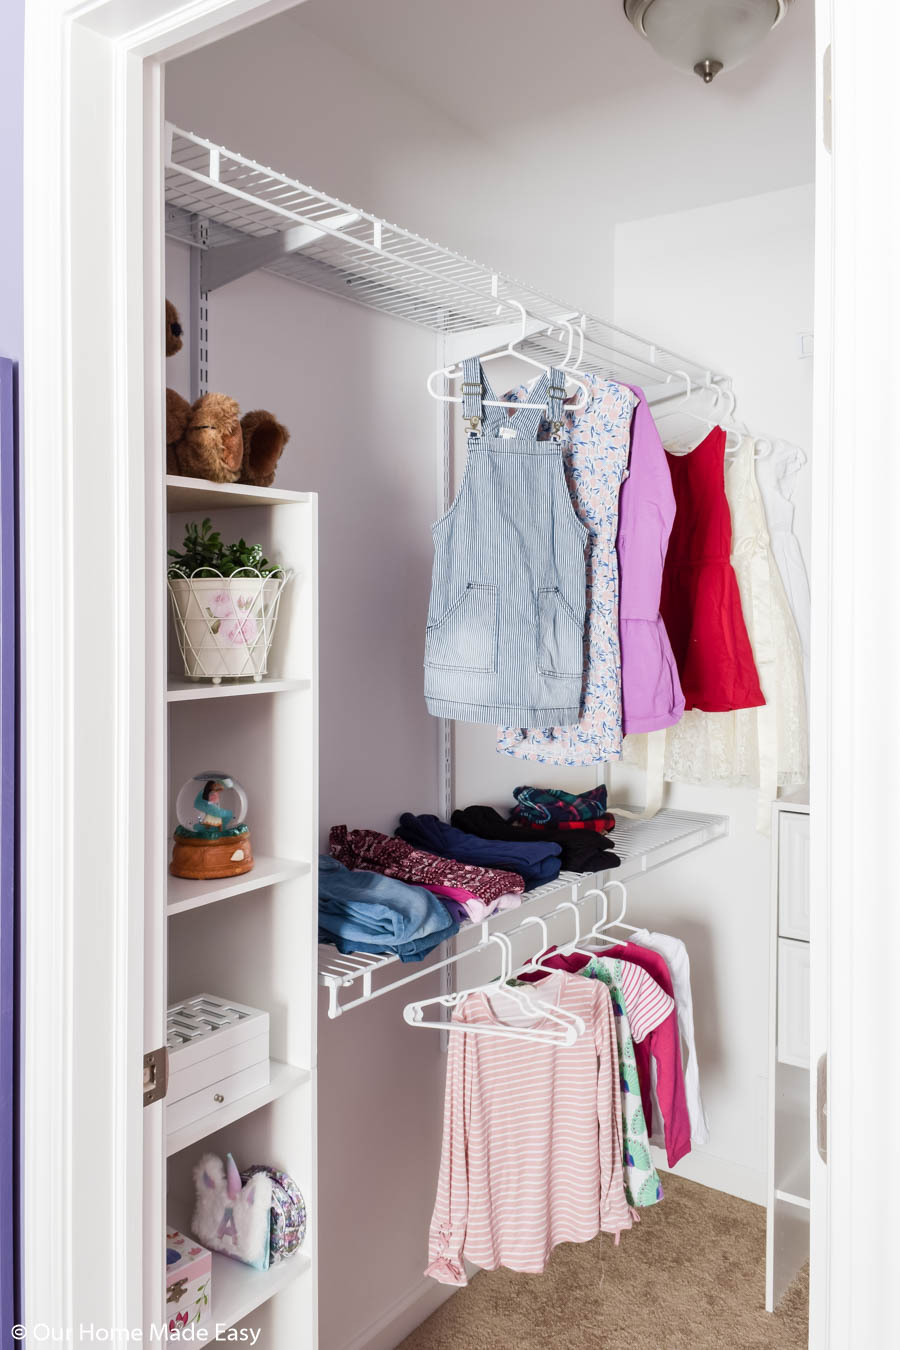 To organize our small closet, we added new shelving and storage, making the best use of small space